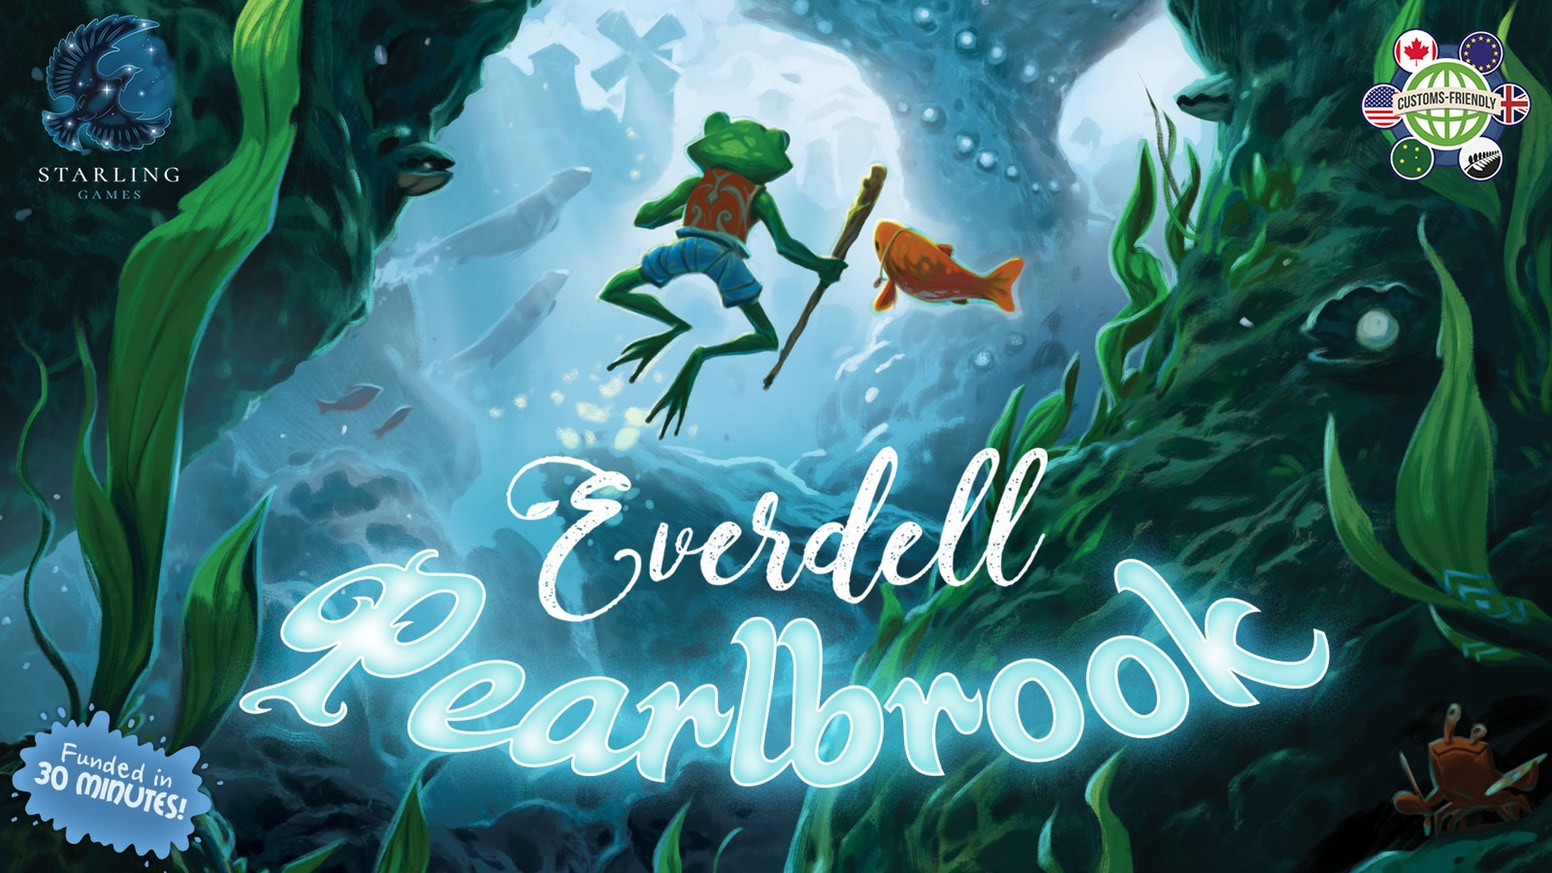 Pearlbrook: The First Expansion for Everdell  by Starling Games    Discover a new world under the river in Pearlbrook, the first expansion for Everdell.    Pre-Order Now